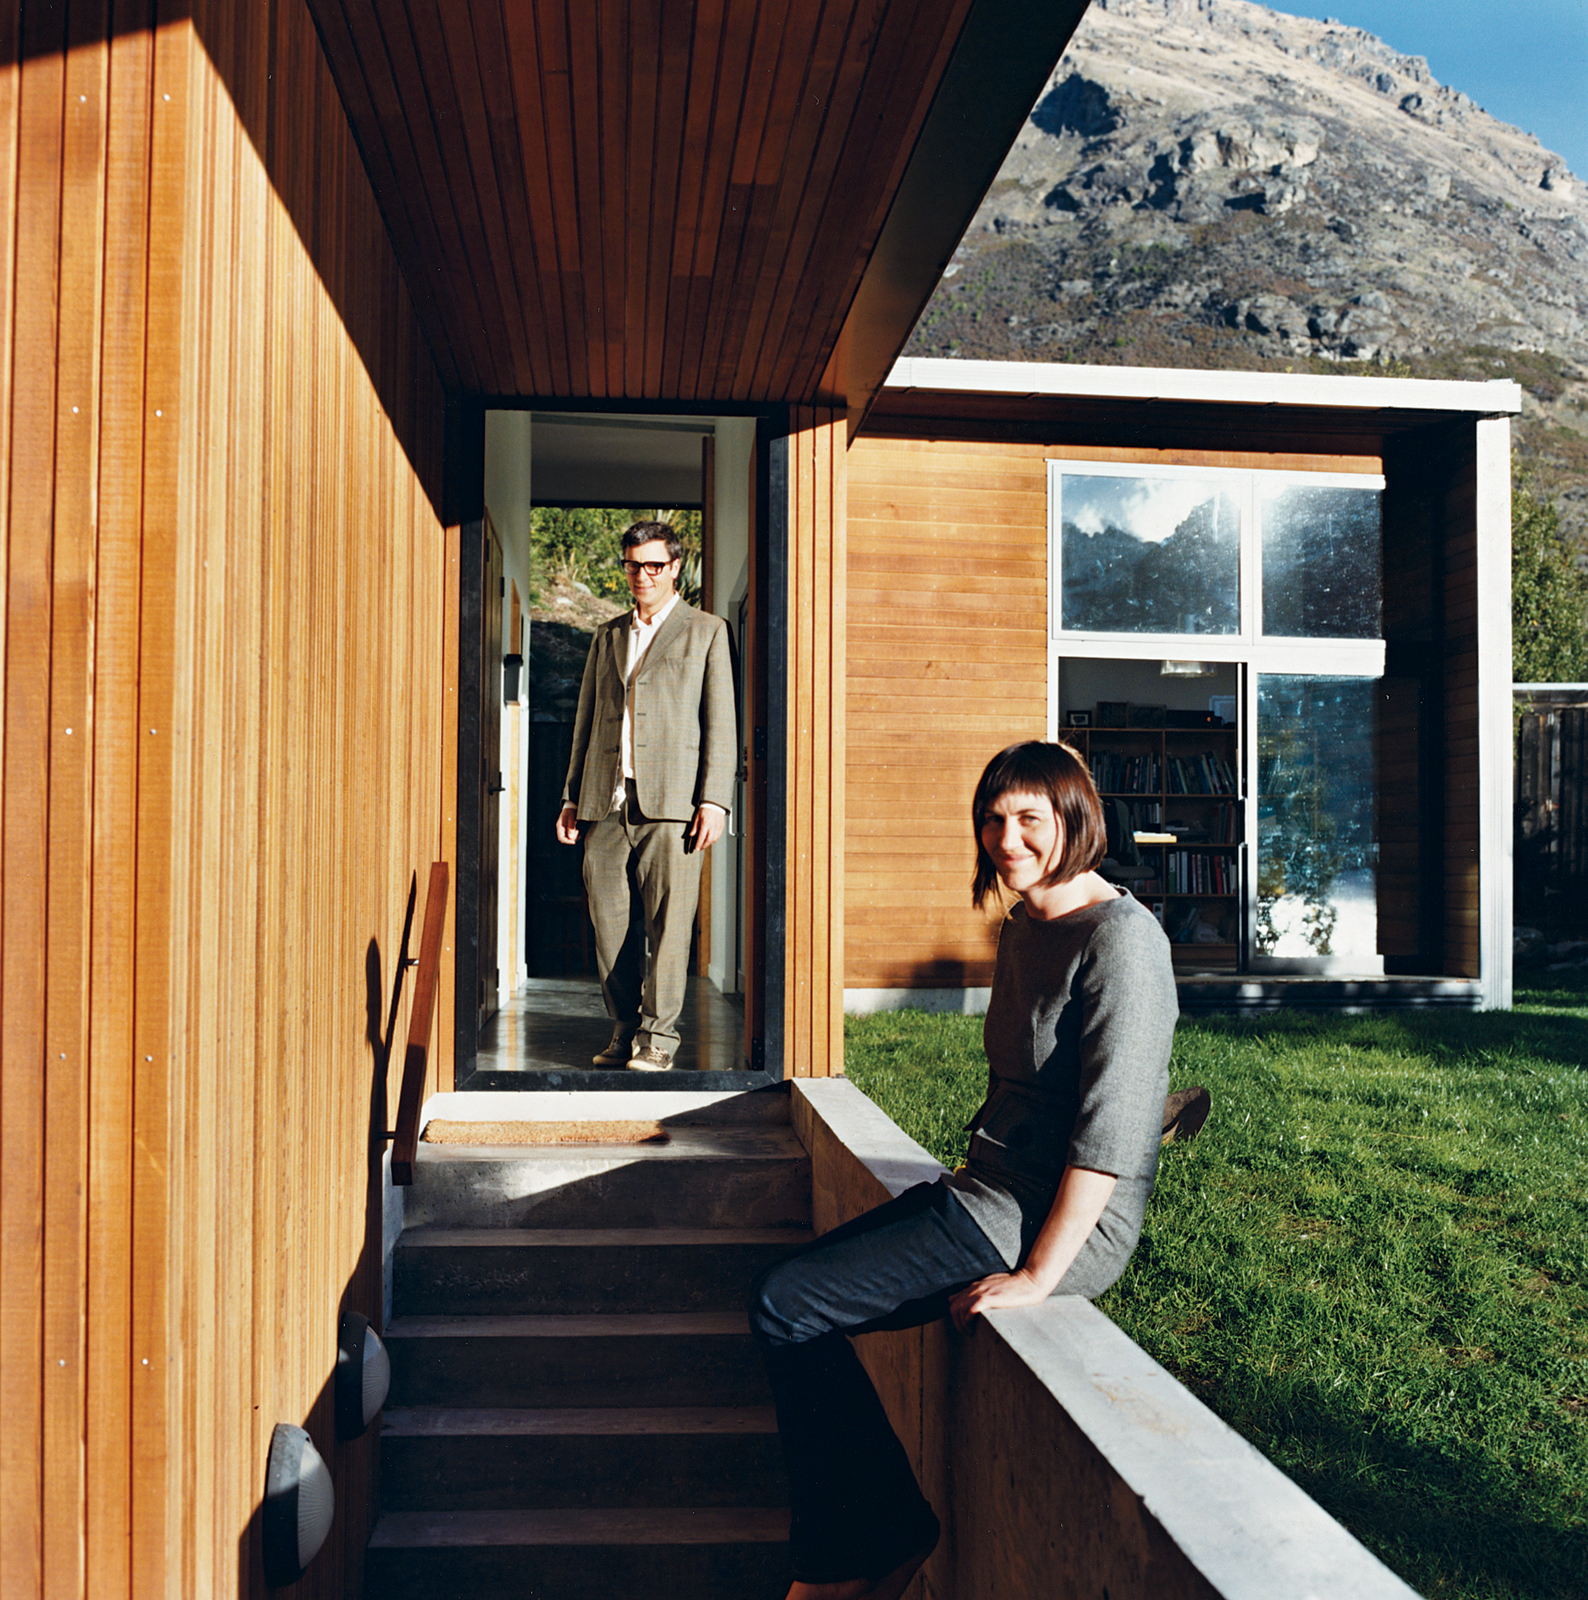 When Bronwen Kerr and Pete Ritchie decided to relocate from New Zealand's capital, Wellington, to Queenstown, on the country's South Island, they designed a new home for themselves and their three children on a site Ritchie had purchased when he was livin